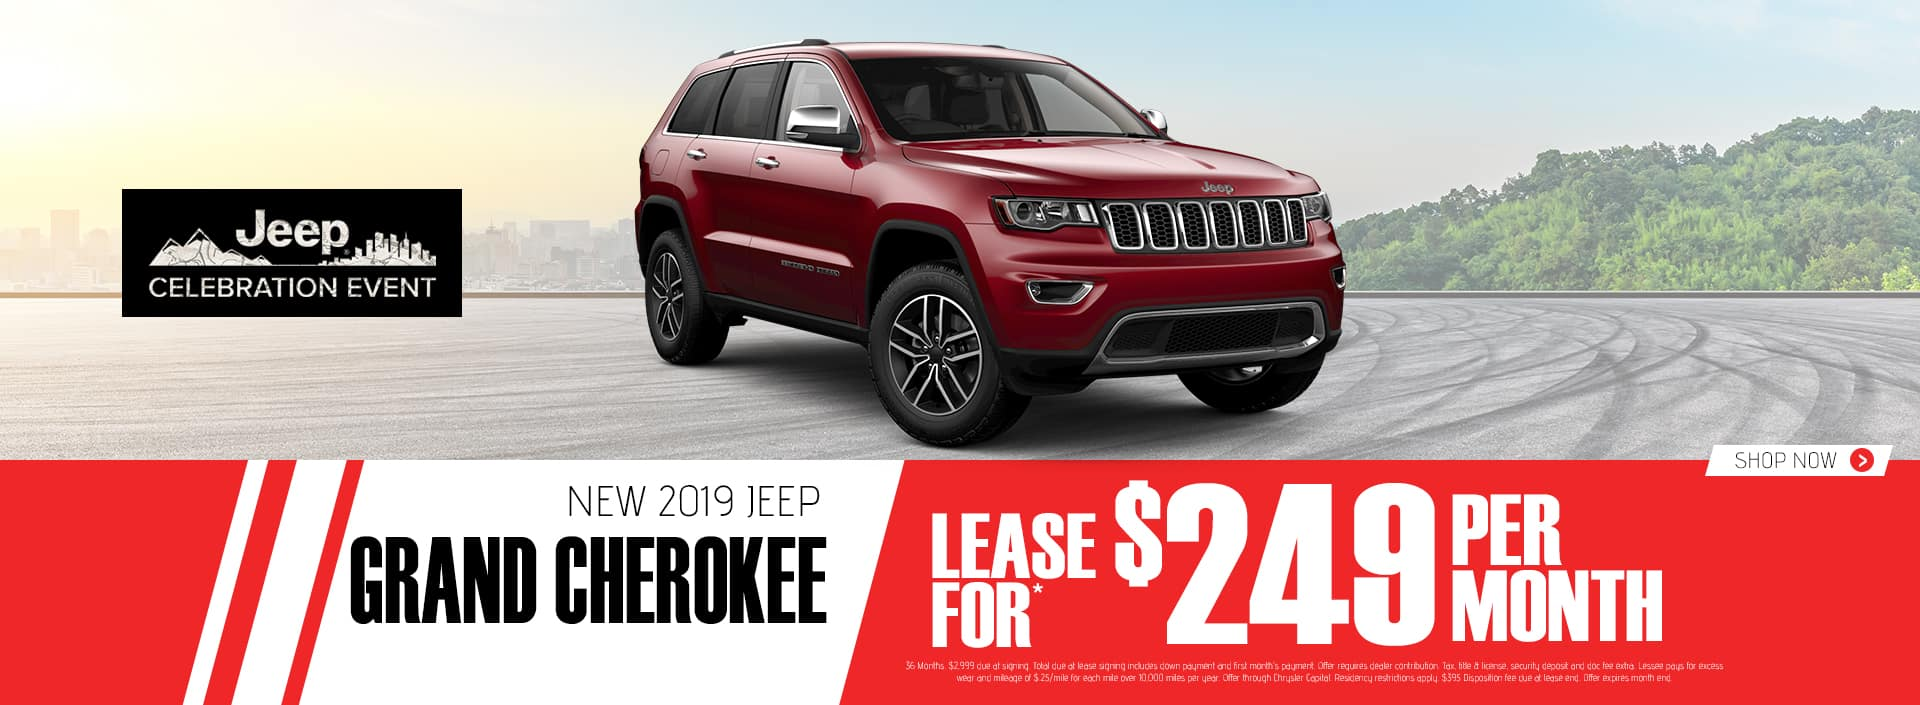 2019 Grand Cherokee $249 Per Month 36 Months $2999 Down